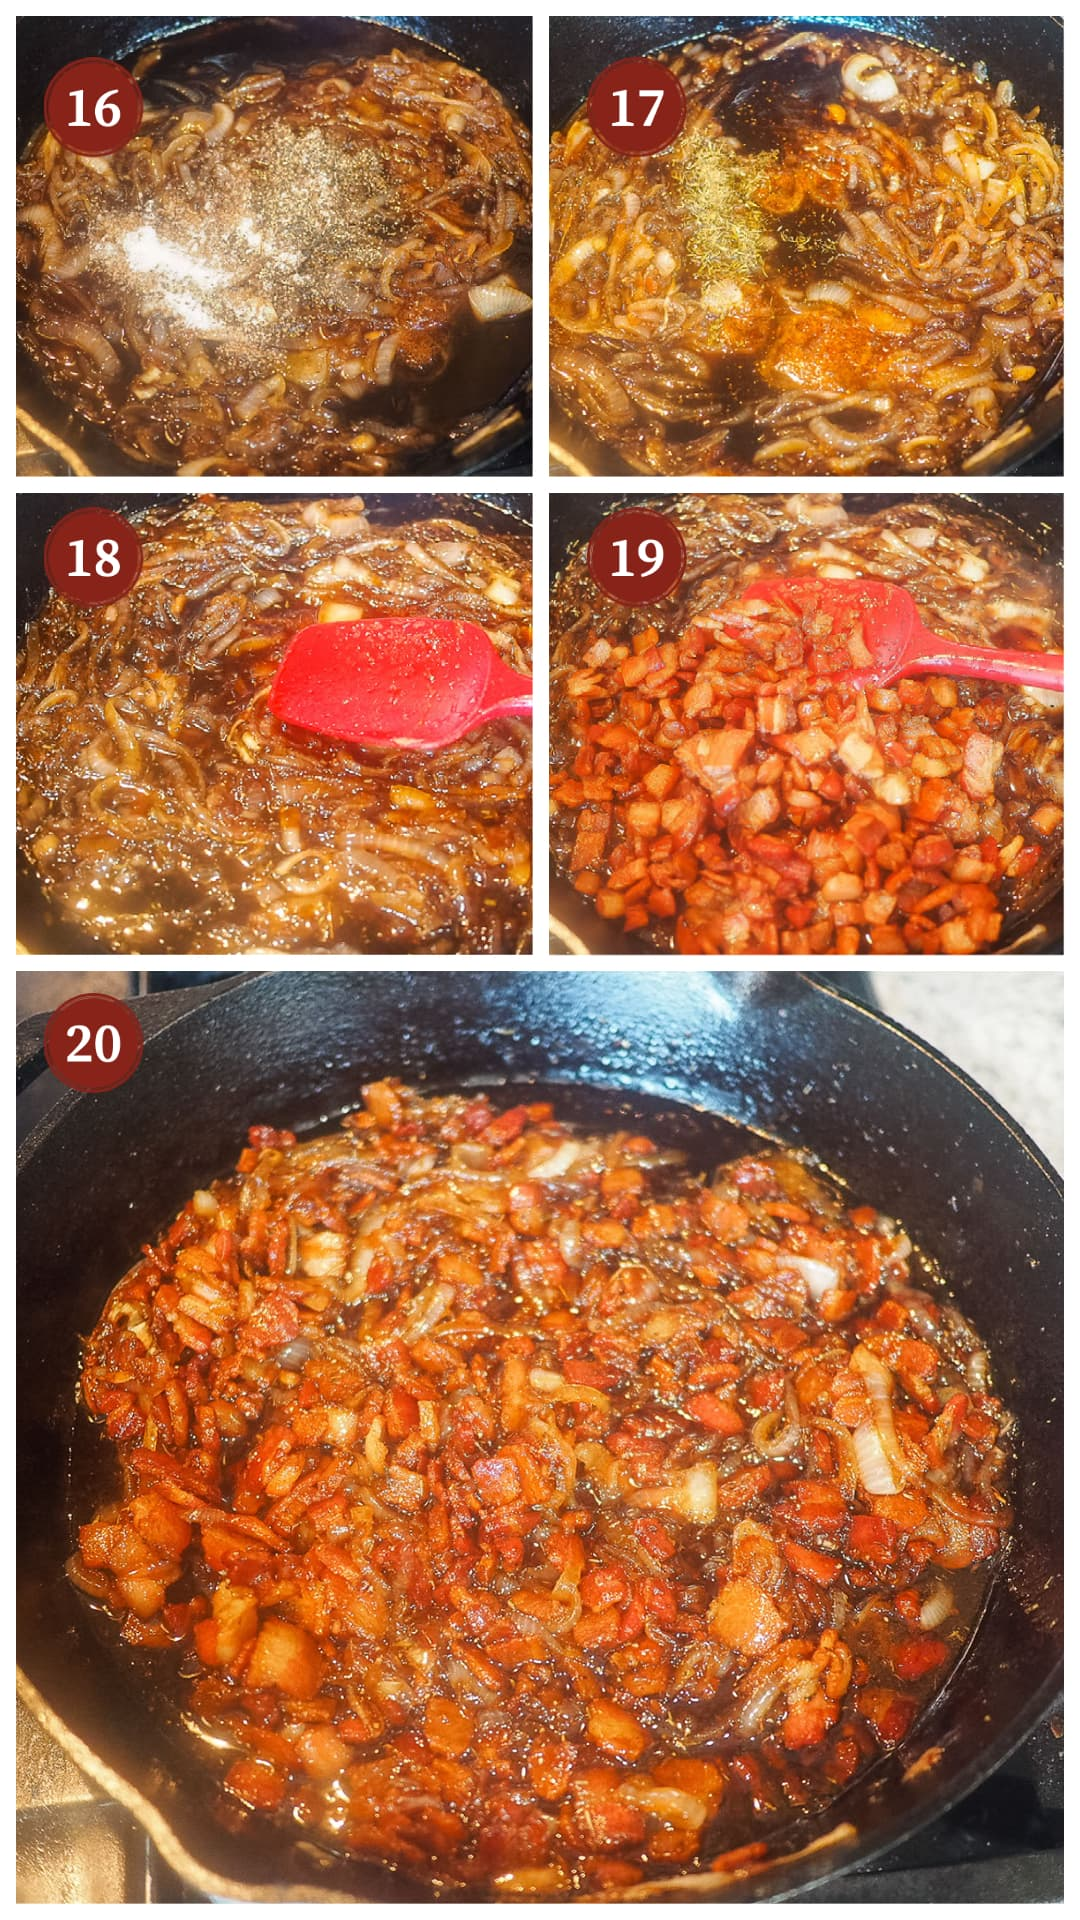 A collage of images showing how to make bacon onion jam steps 16 - 20.